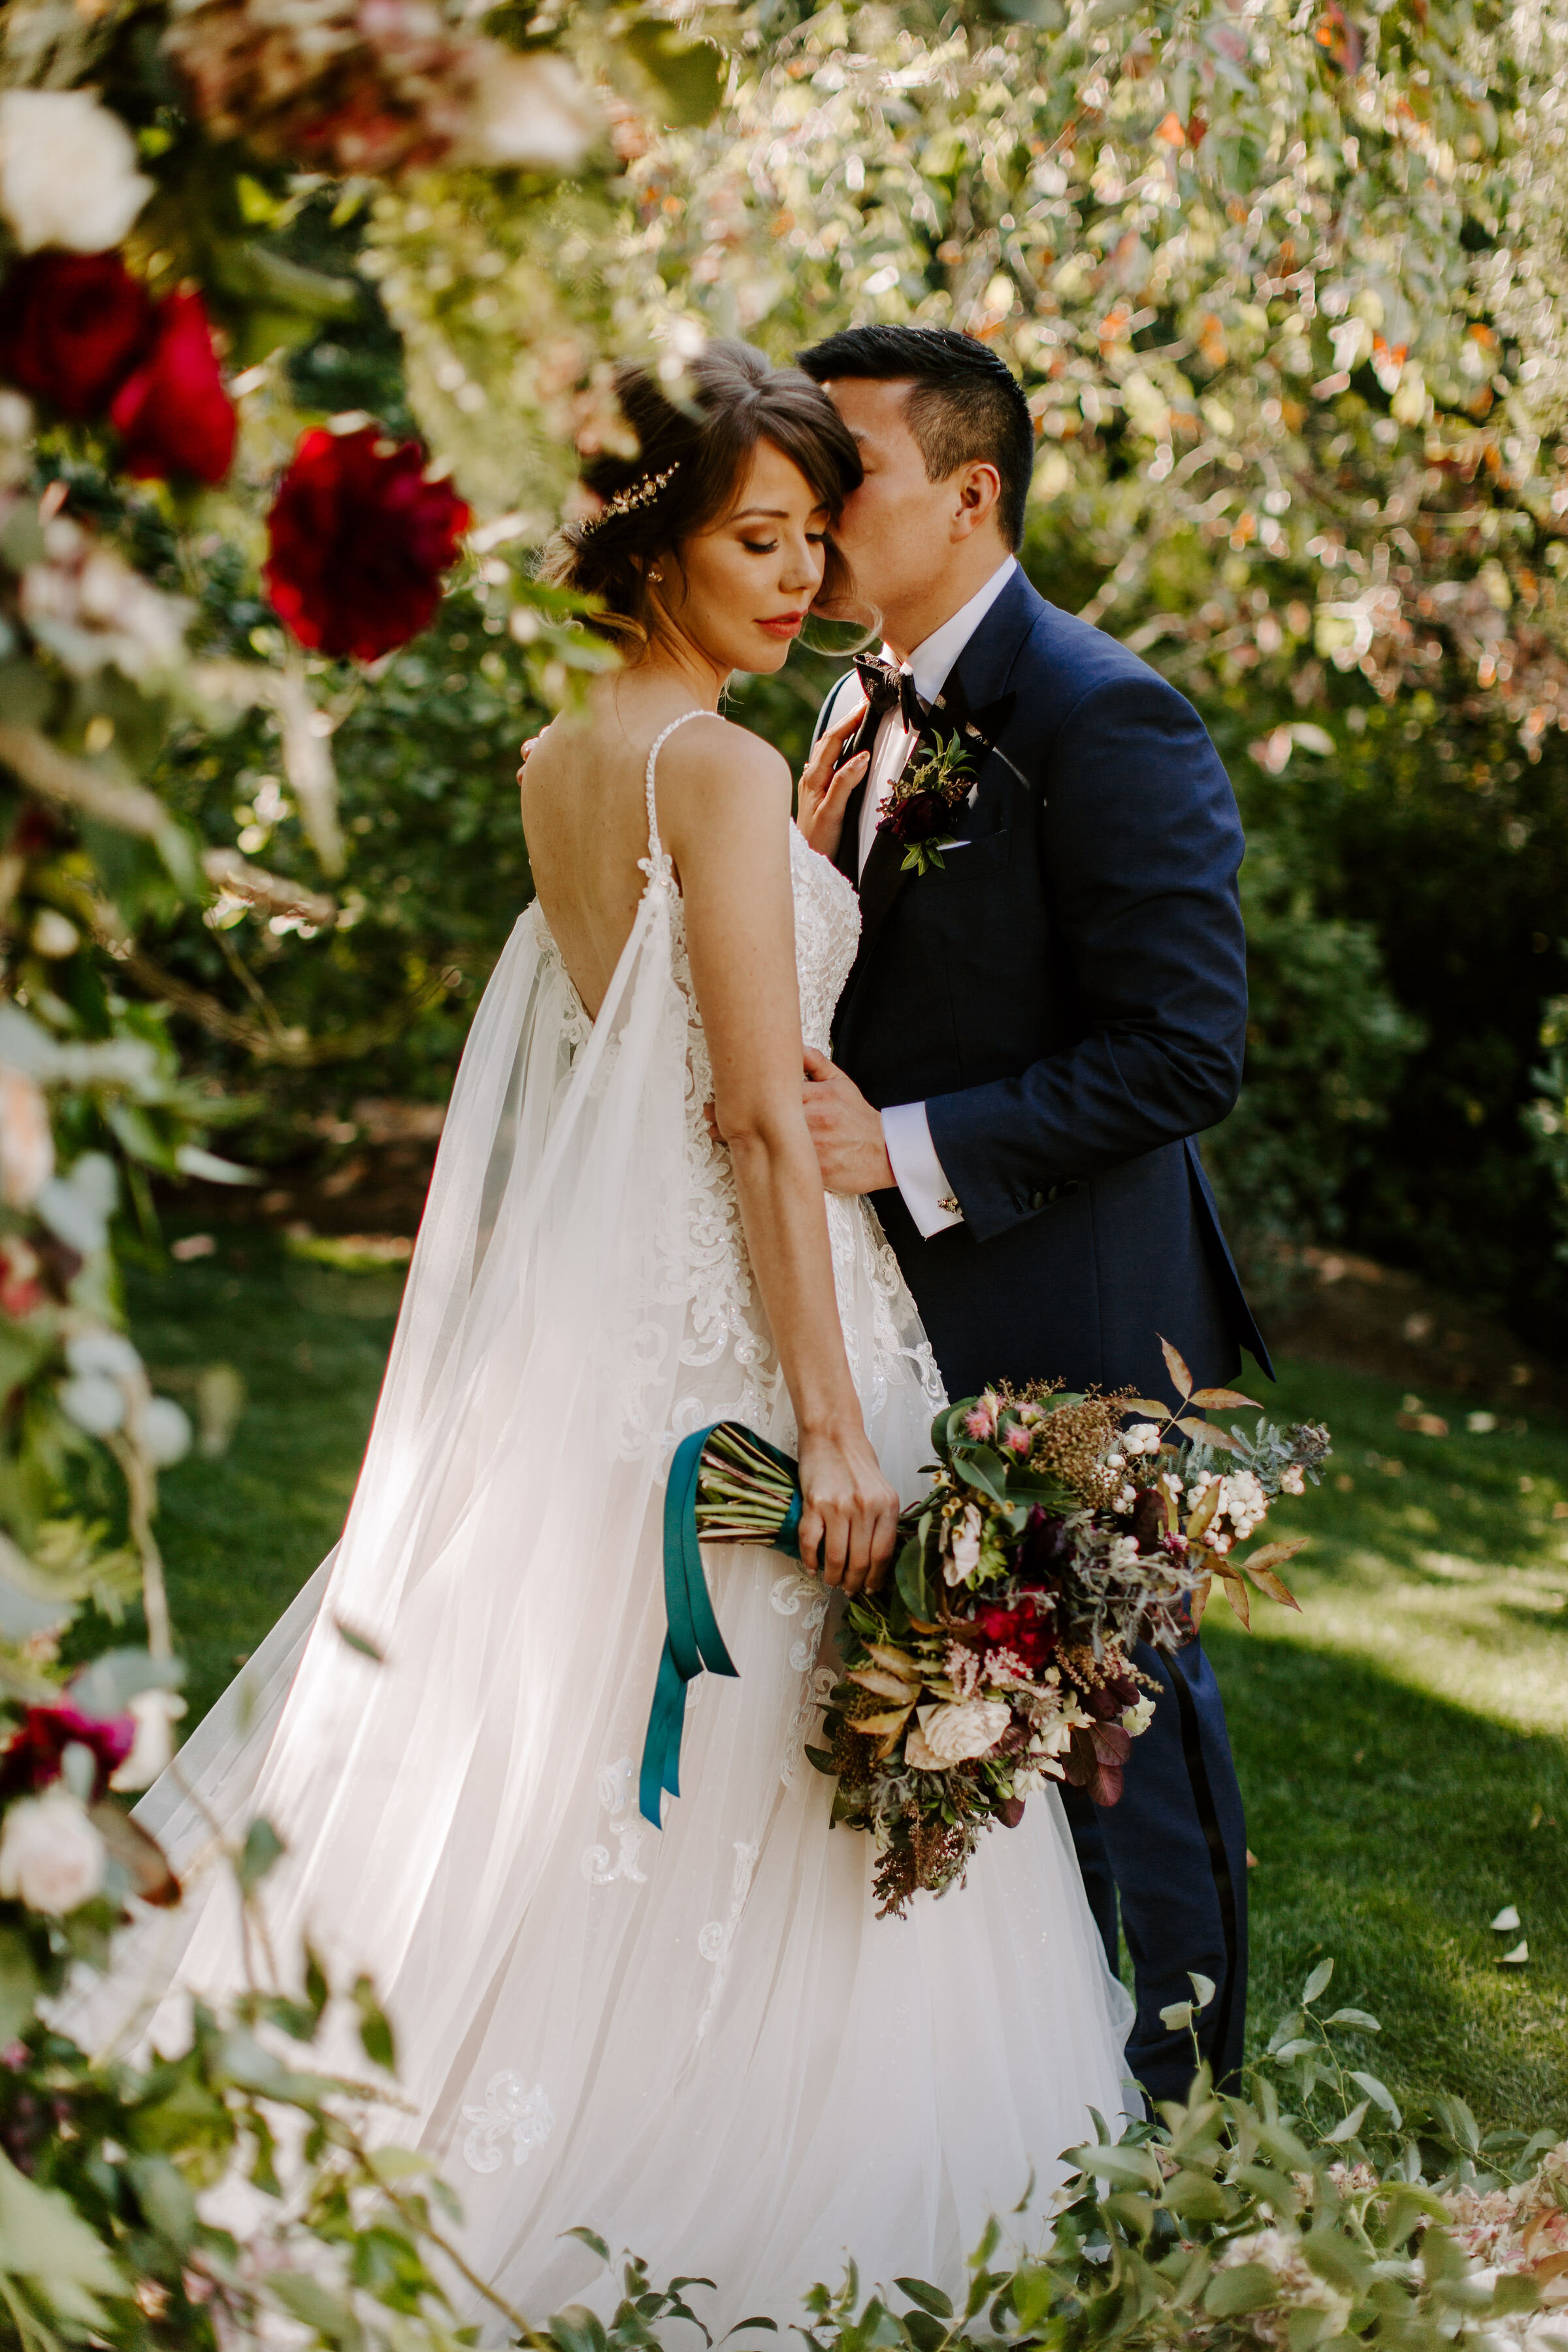 Fall Wedding Altar Ideas Featured in Town & Country Magazine4.jpg